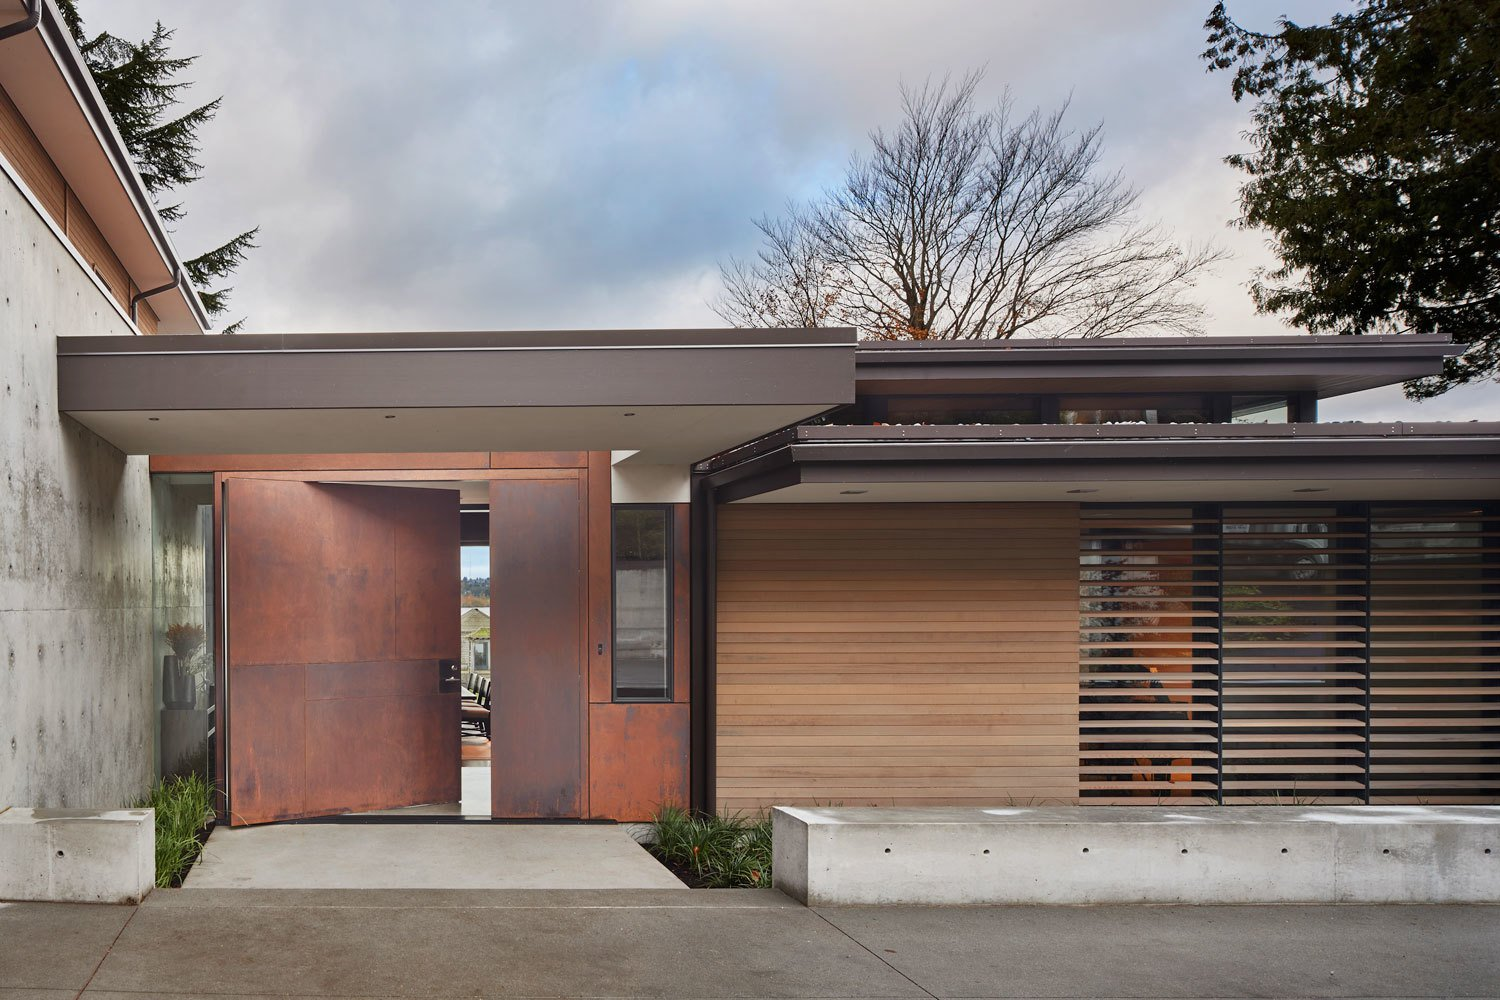 Exterior, Wood Siding Material, Concrete Siding Material, Metal Siding Material, House Building Type, and Flat RoofLine A custom Cor-Ten steel pivot door leads into the lakefront home  Union Bay Residence by NB Design Group